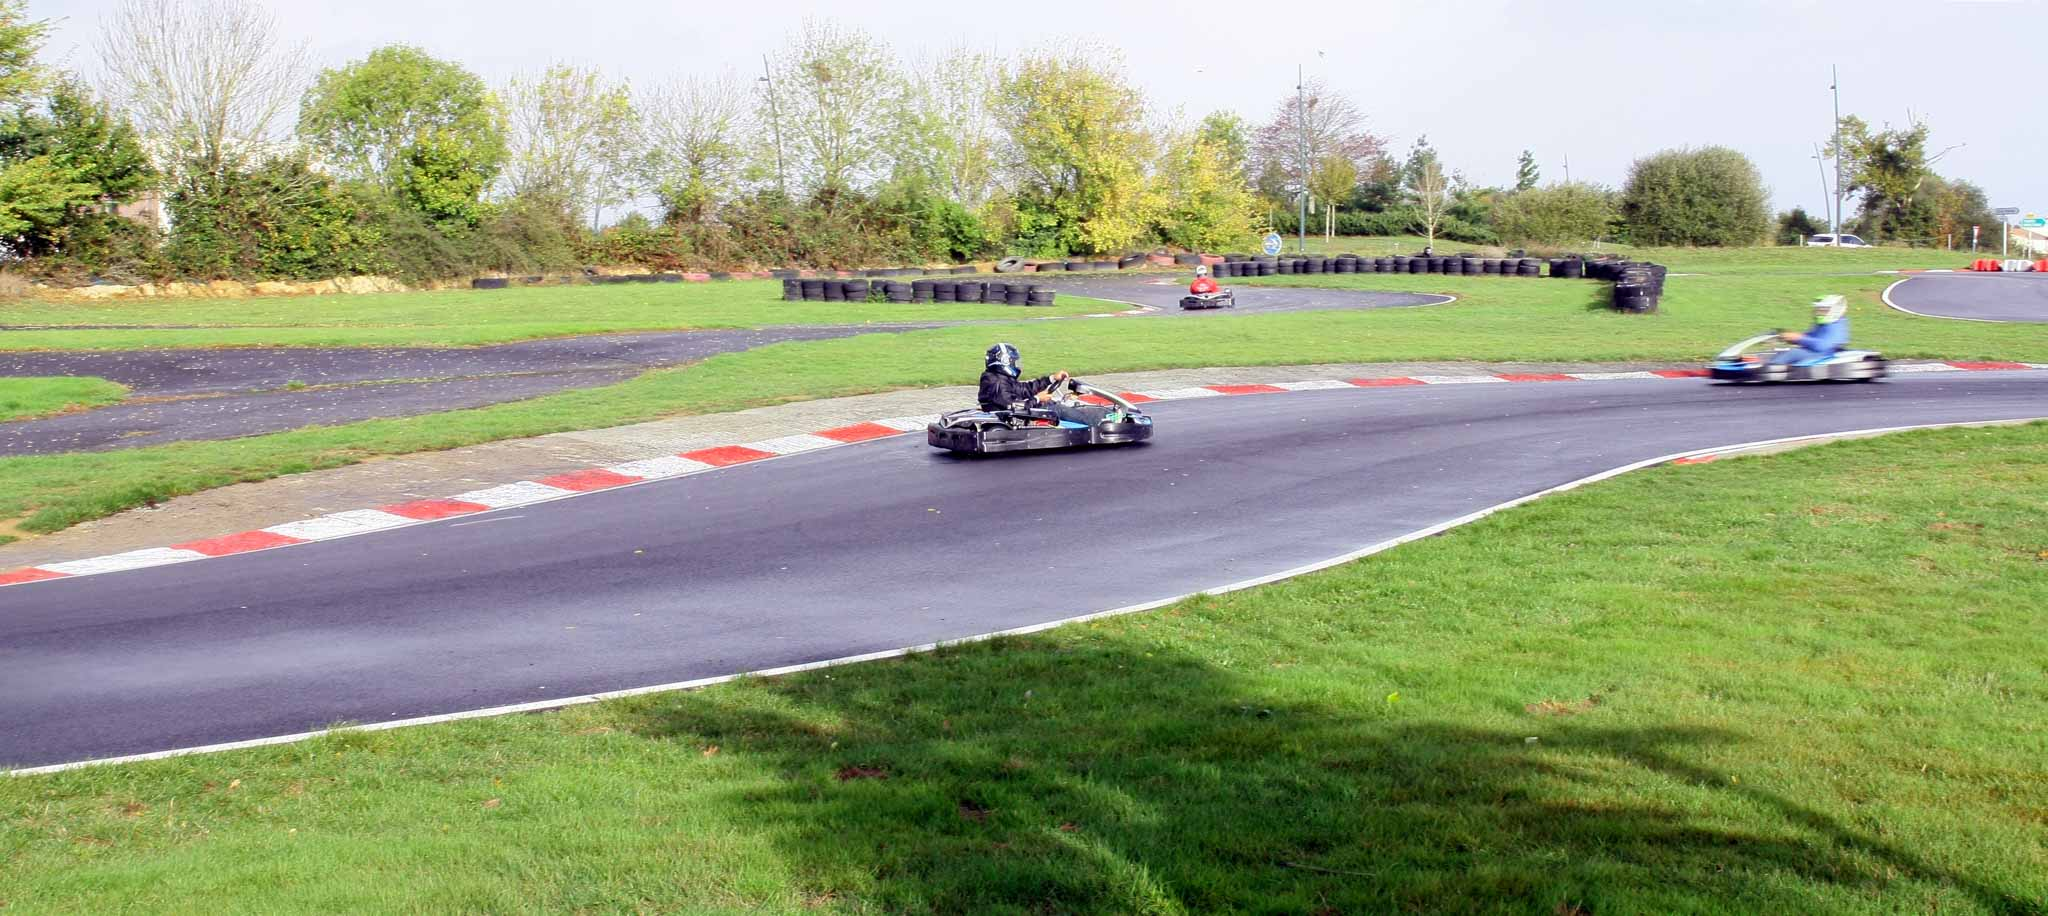 divertissement sur un circuit de karting